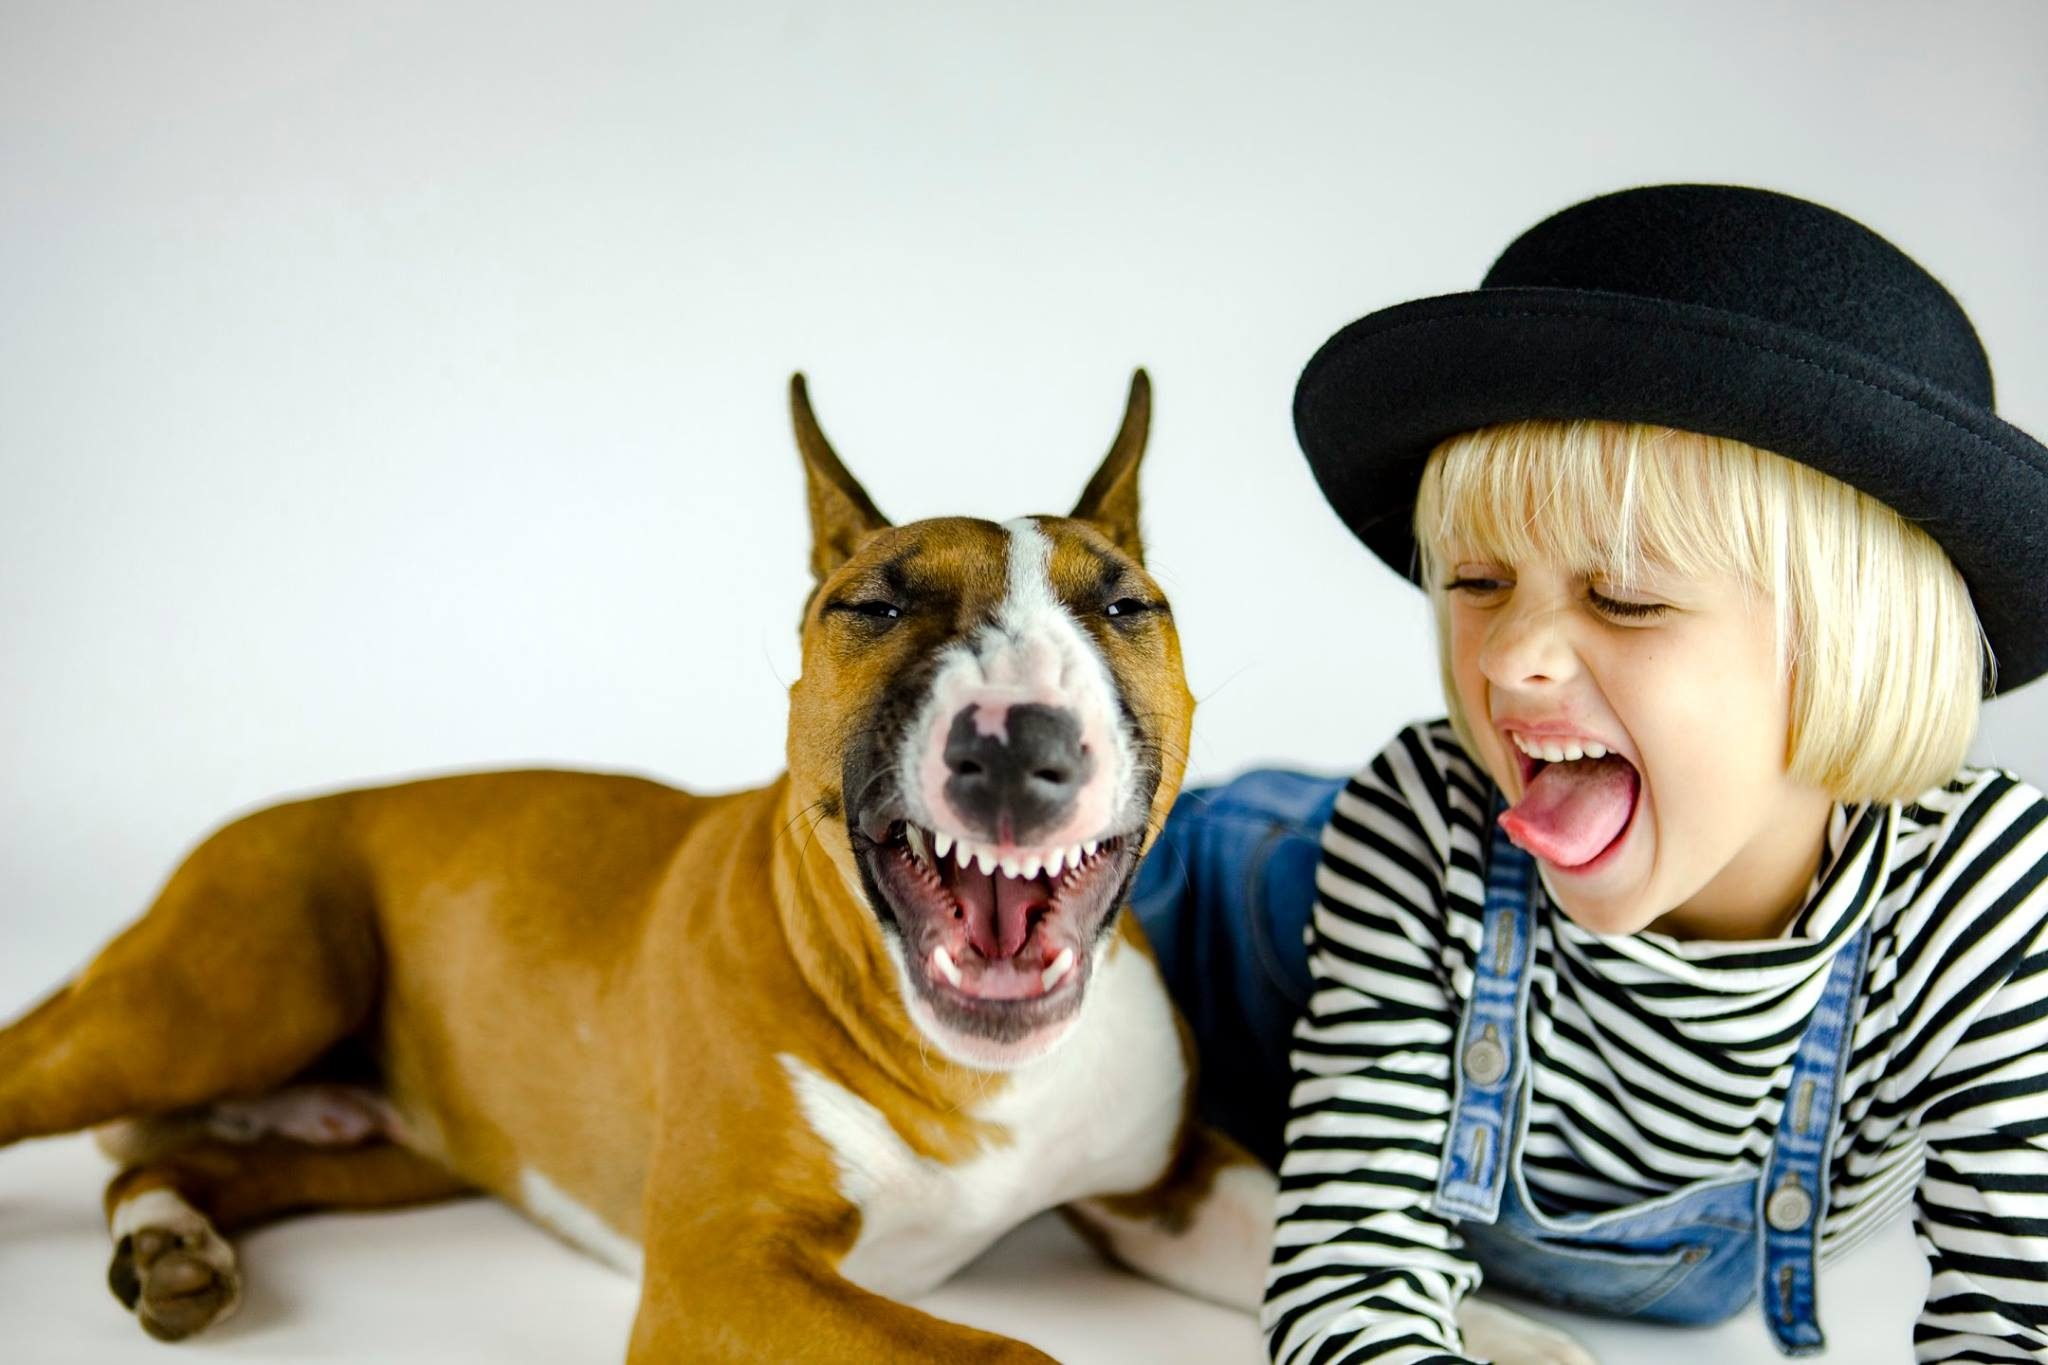 Little girl and her dog both stick their tongues out